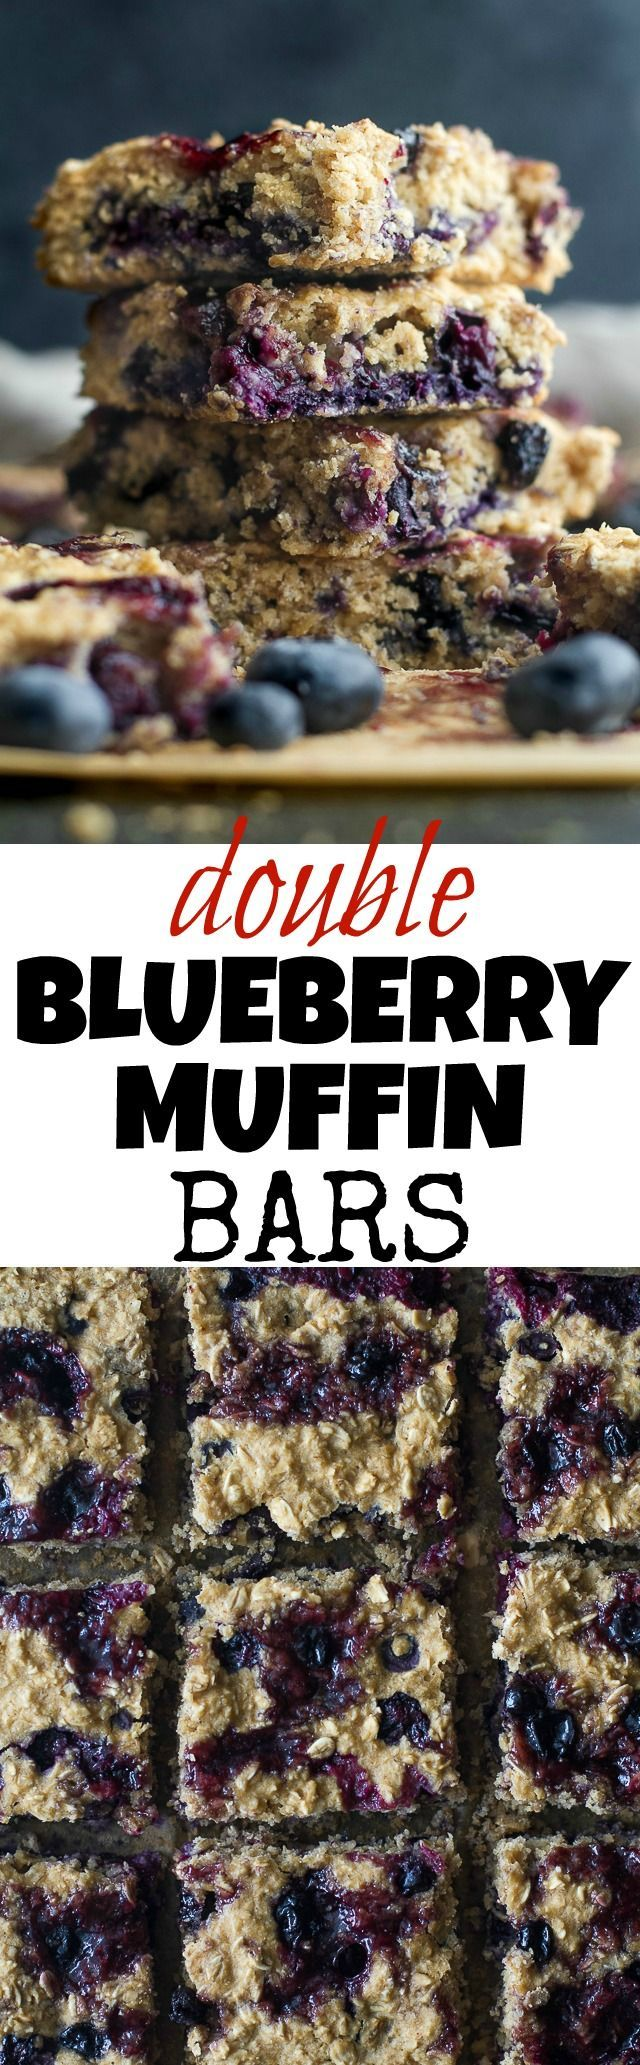 Double Blueberry Muffin Bars   Recipe   Blueberries ...